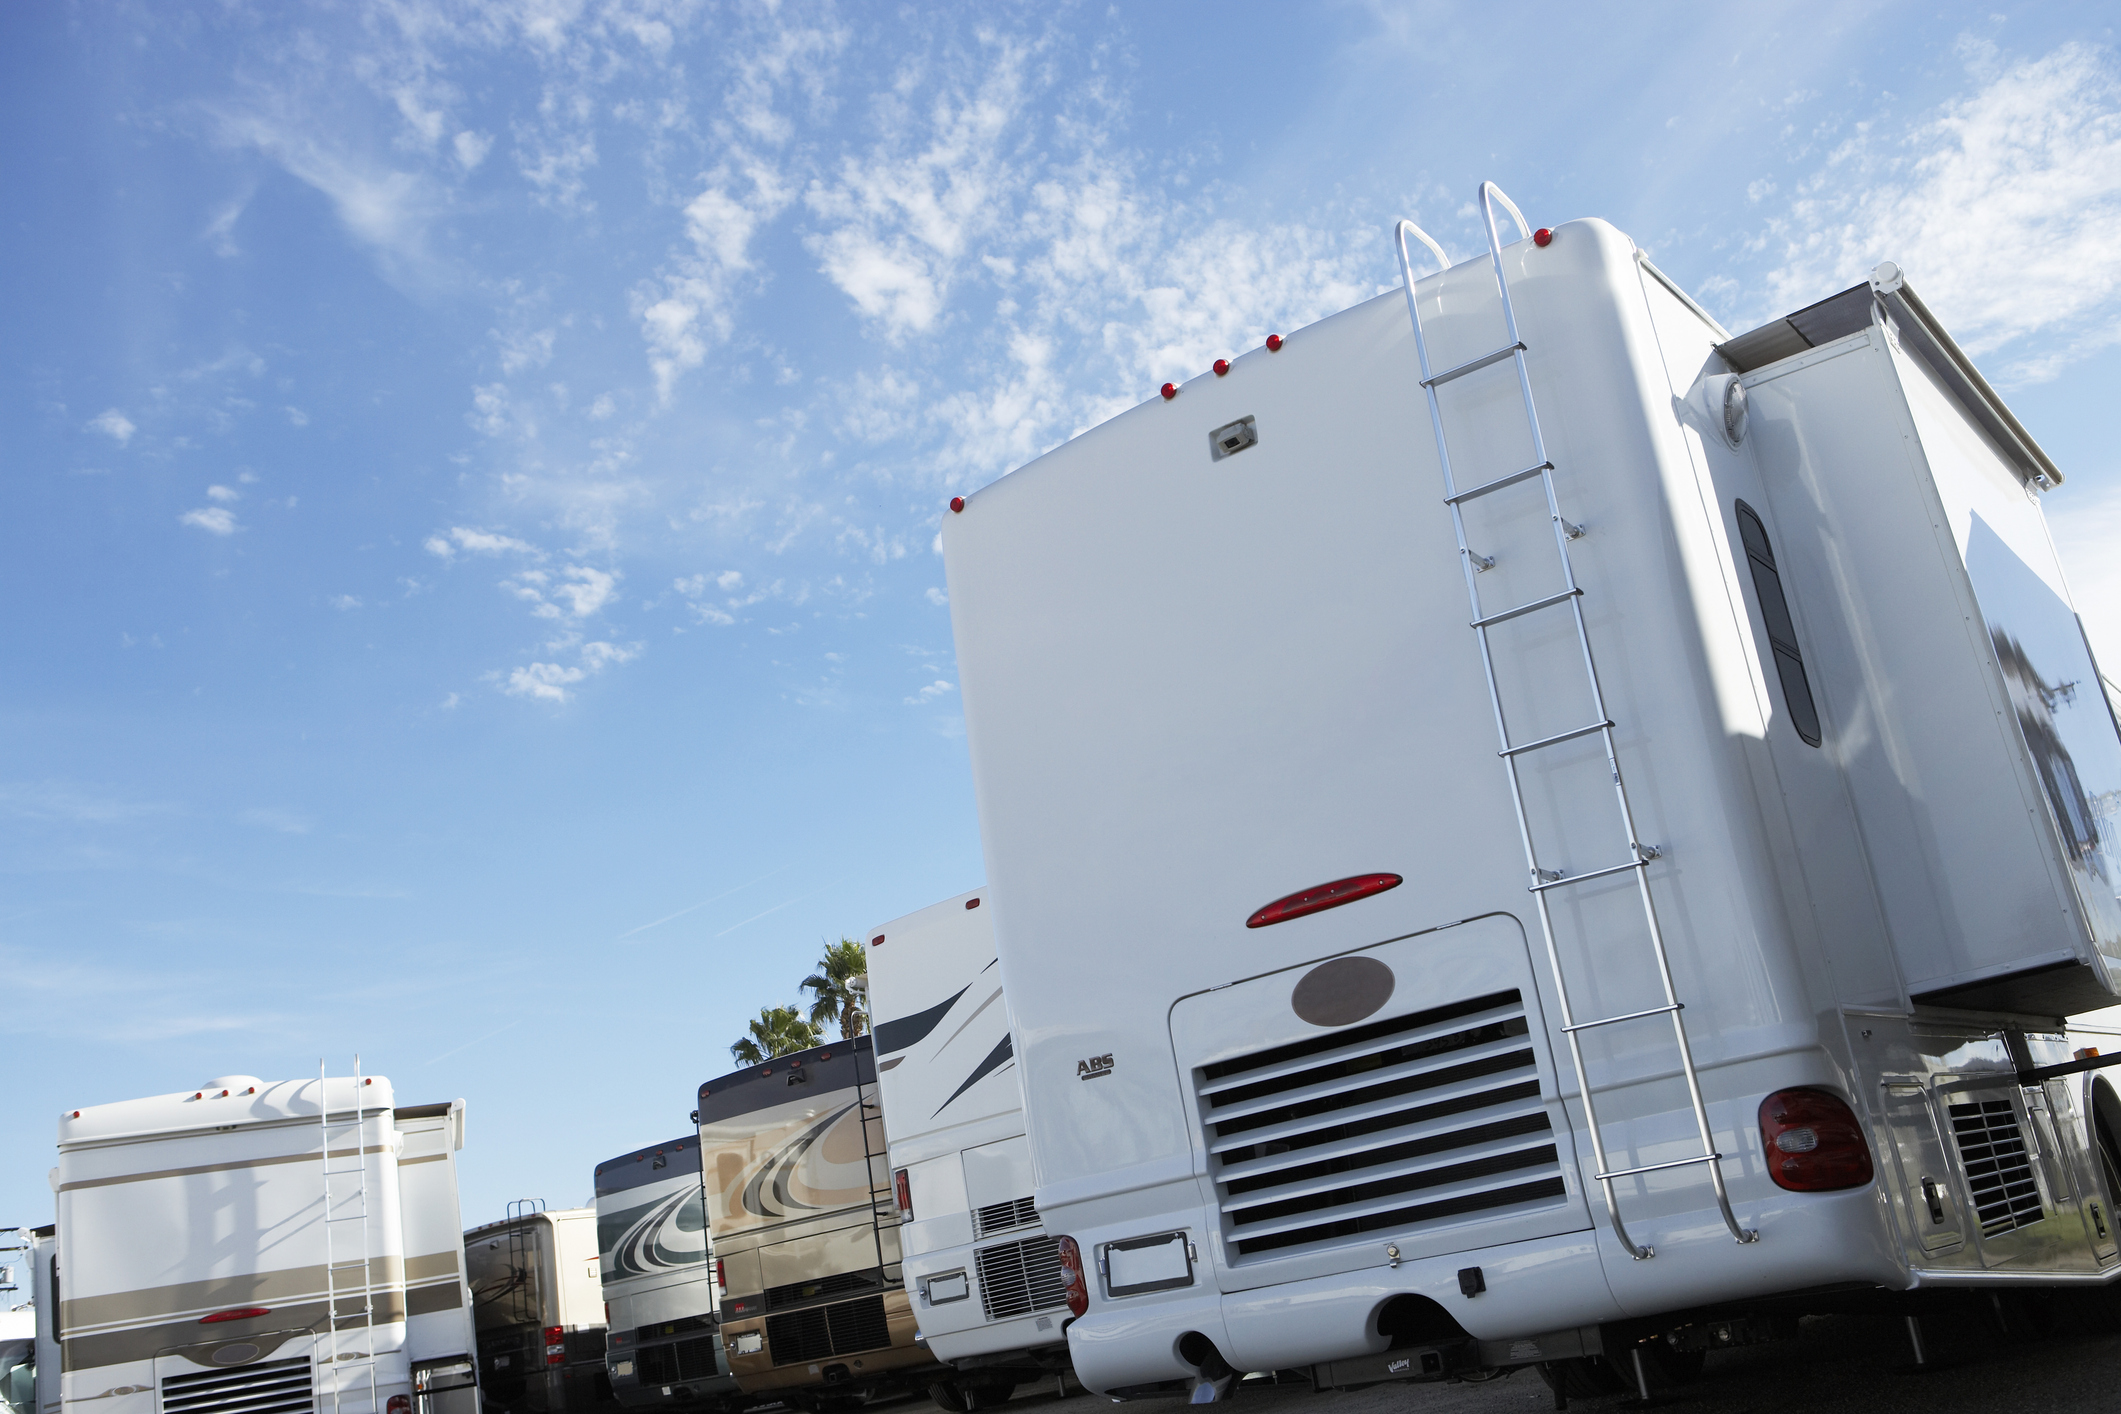 Back of several motorhomes parked in lot, on sunny day